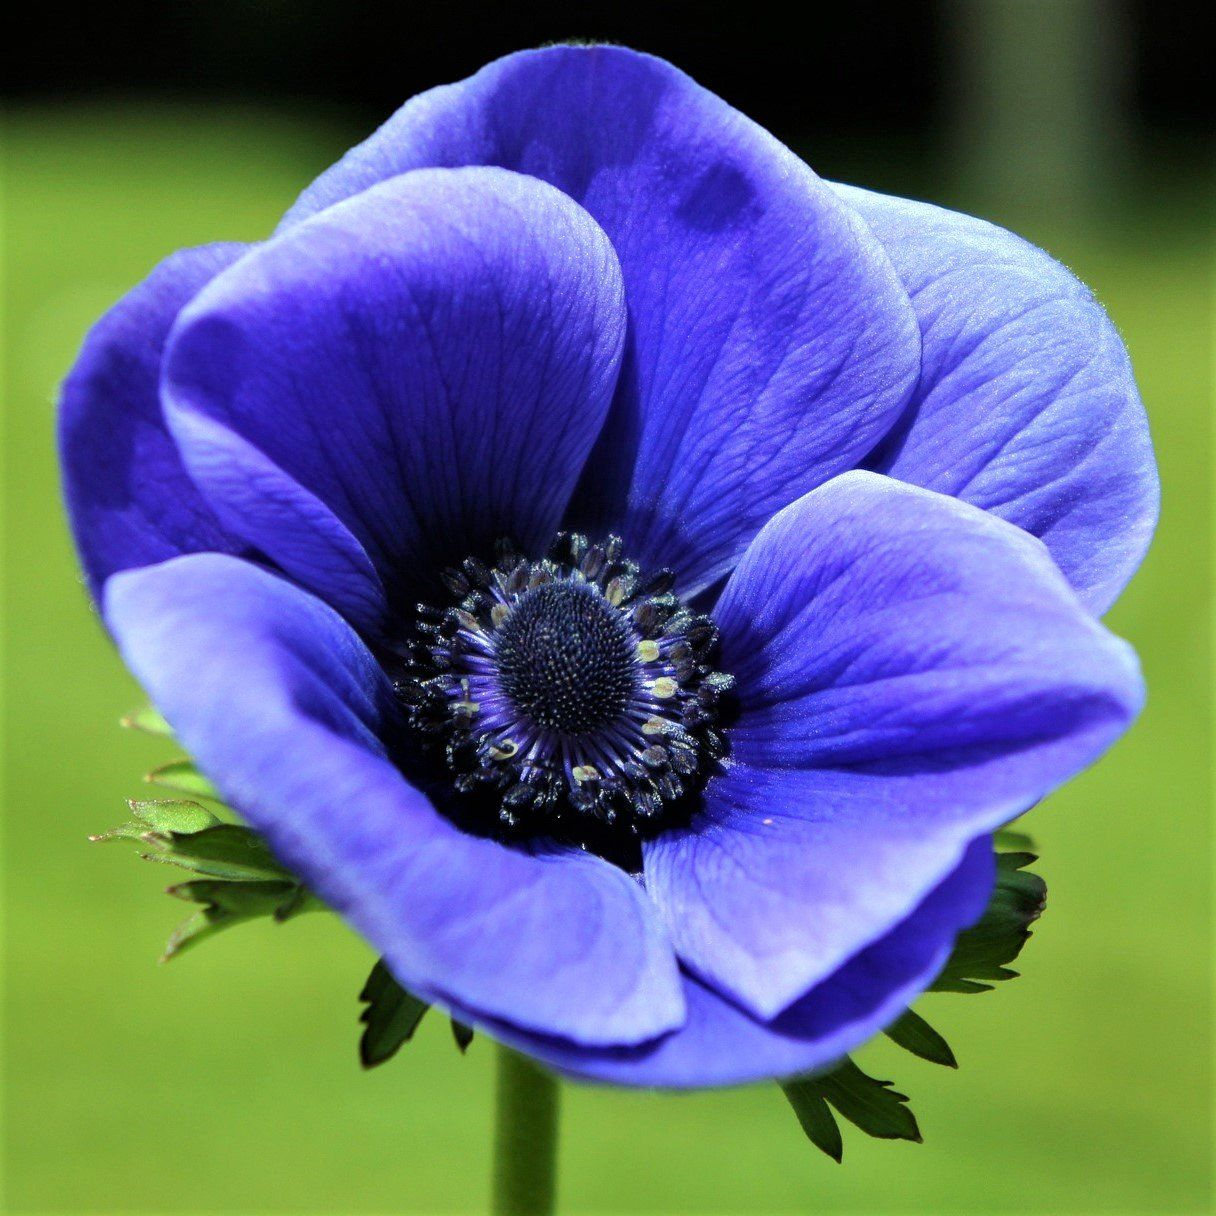 Anemone Blue Poppy Anemone Flower Blue Flowers Images Anemone